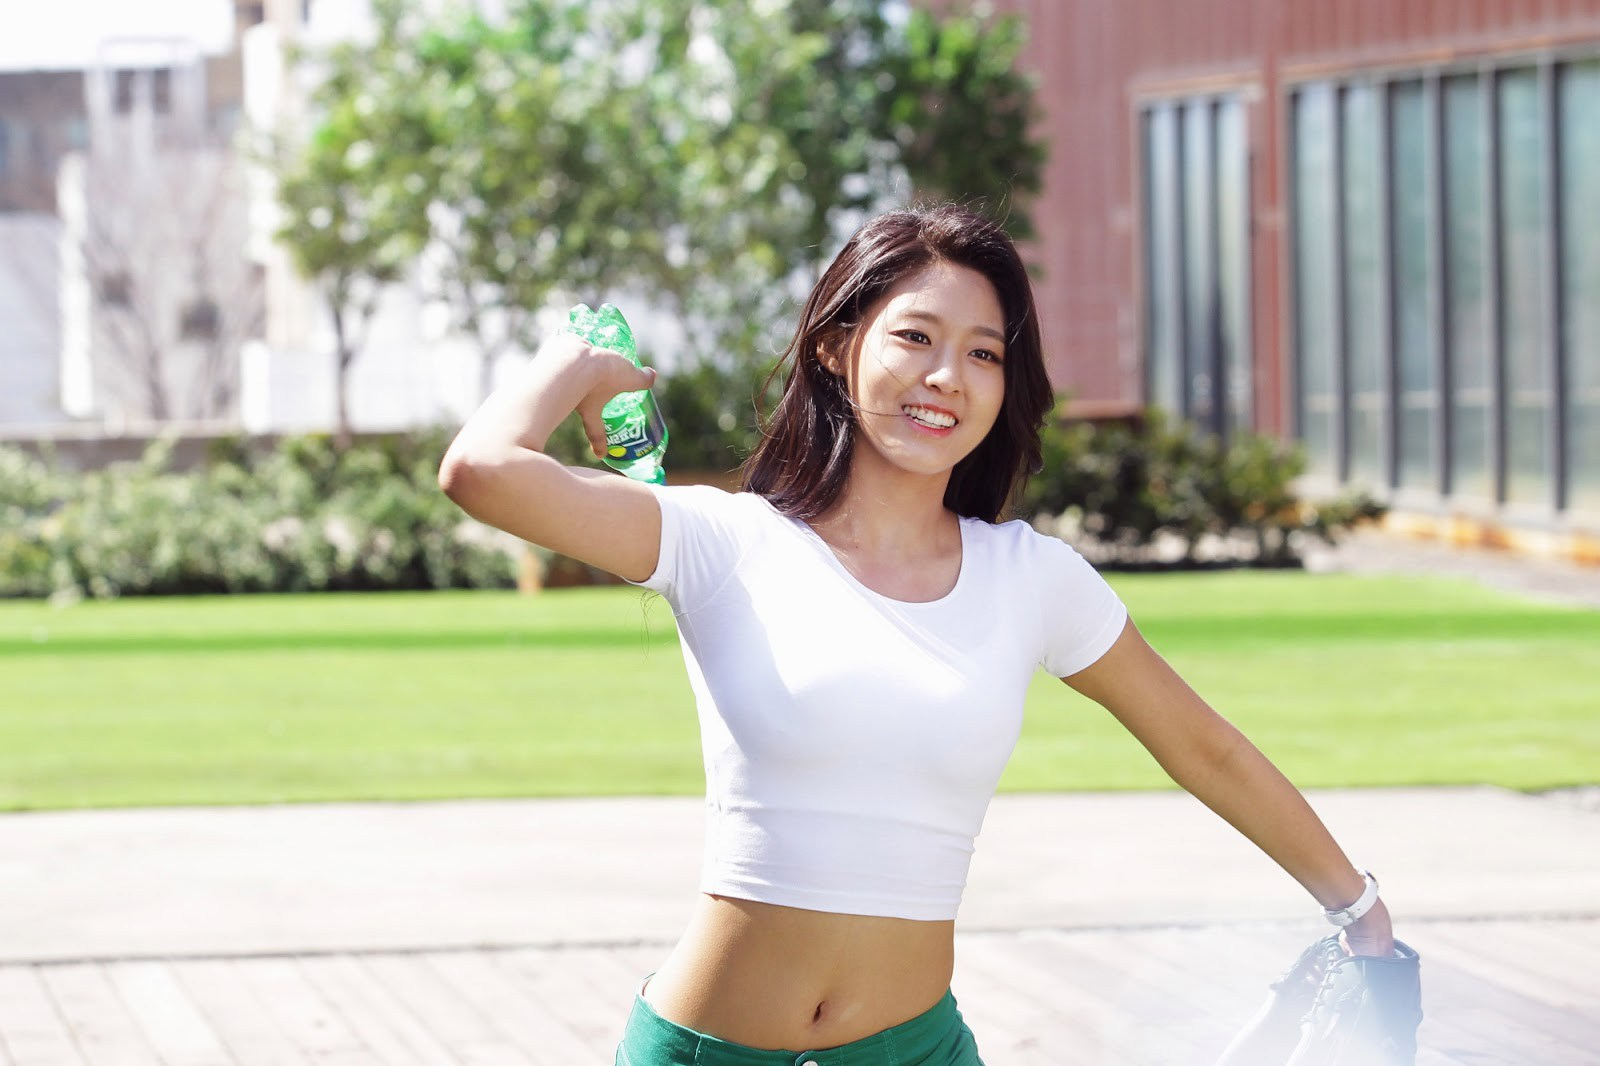 Seolhyun hits a home run with another legendary CF — Koreaboo